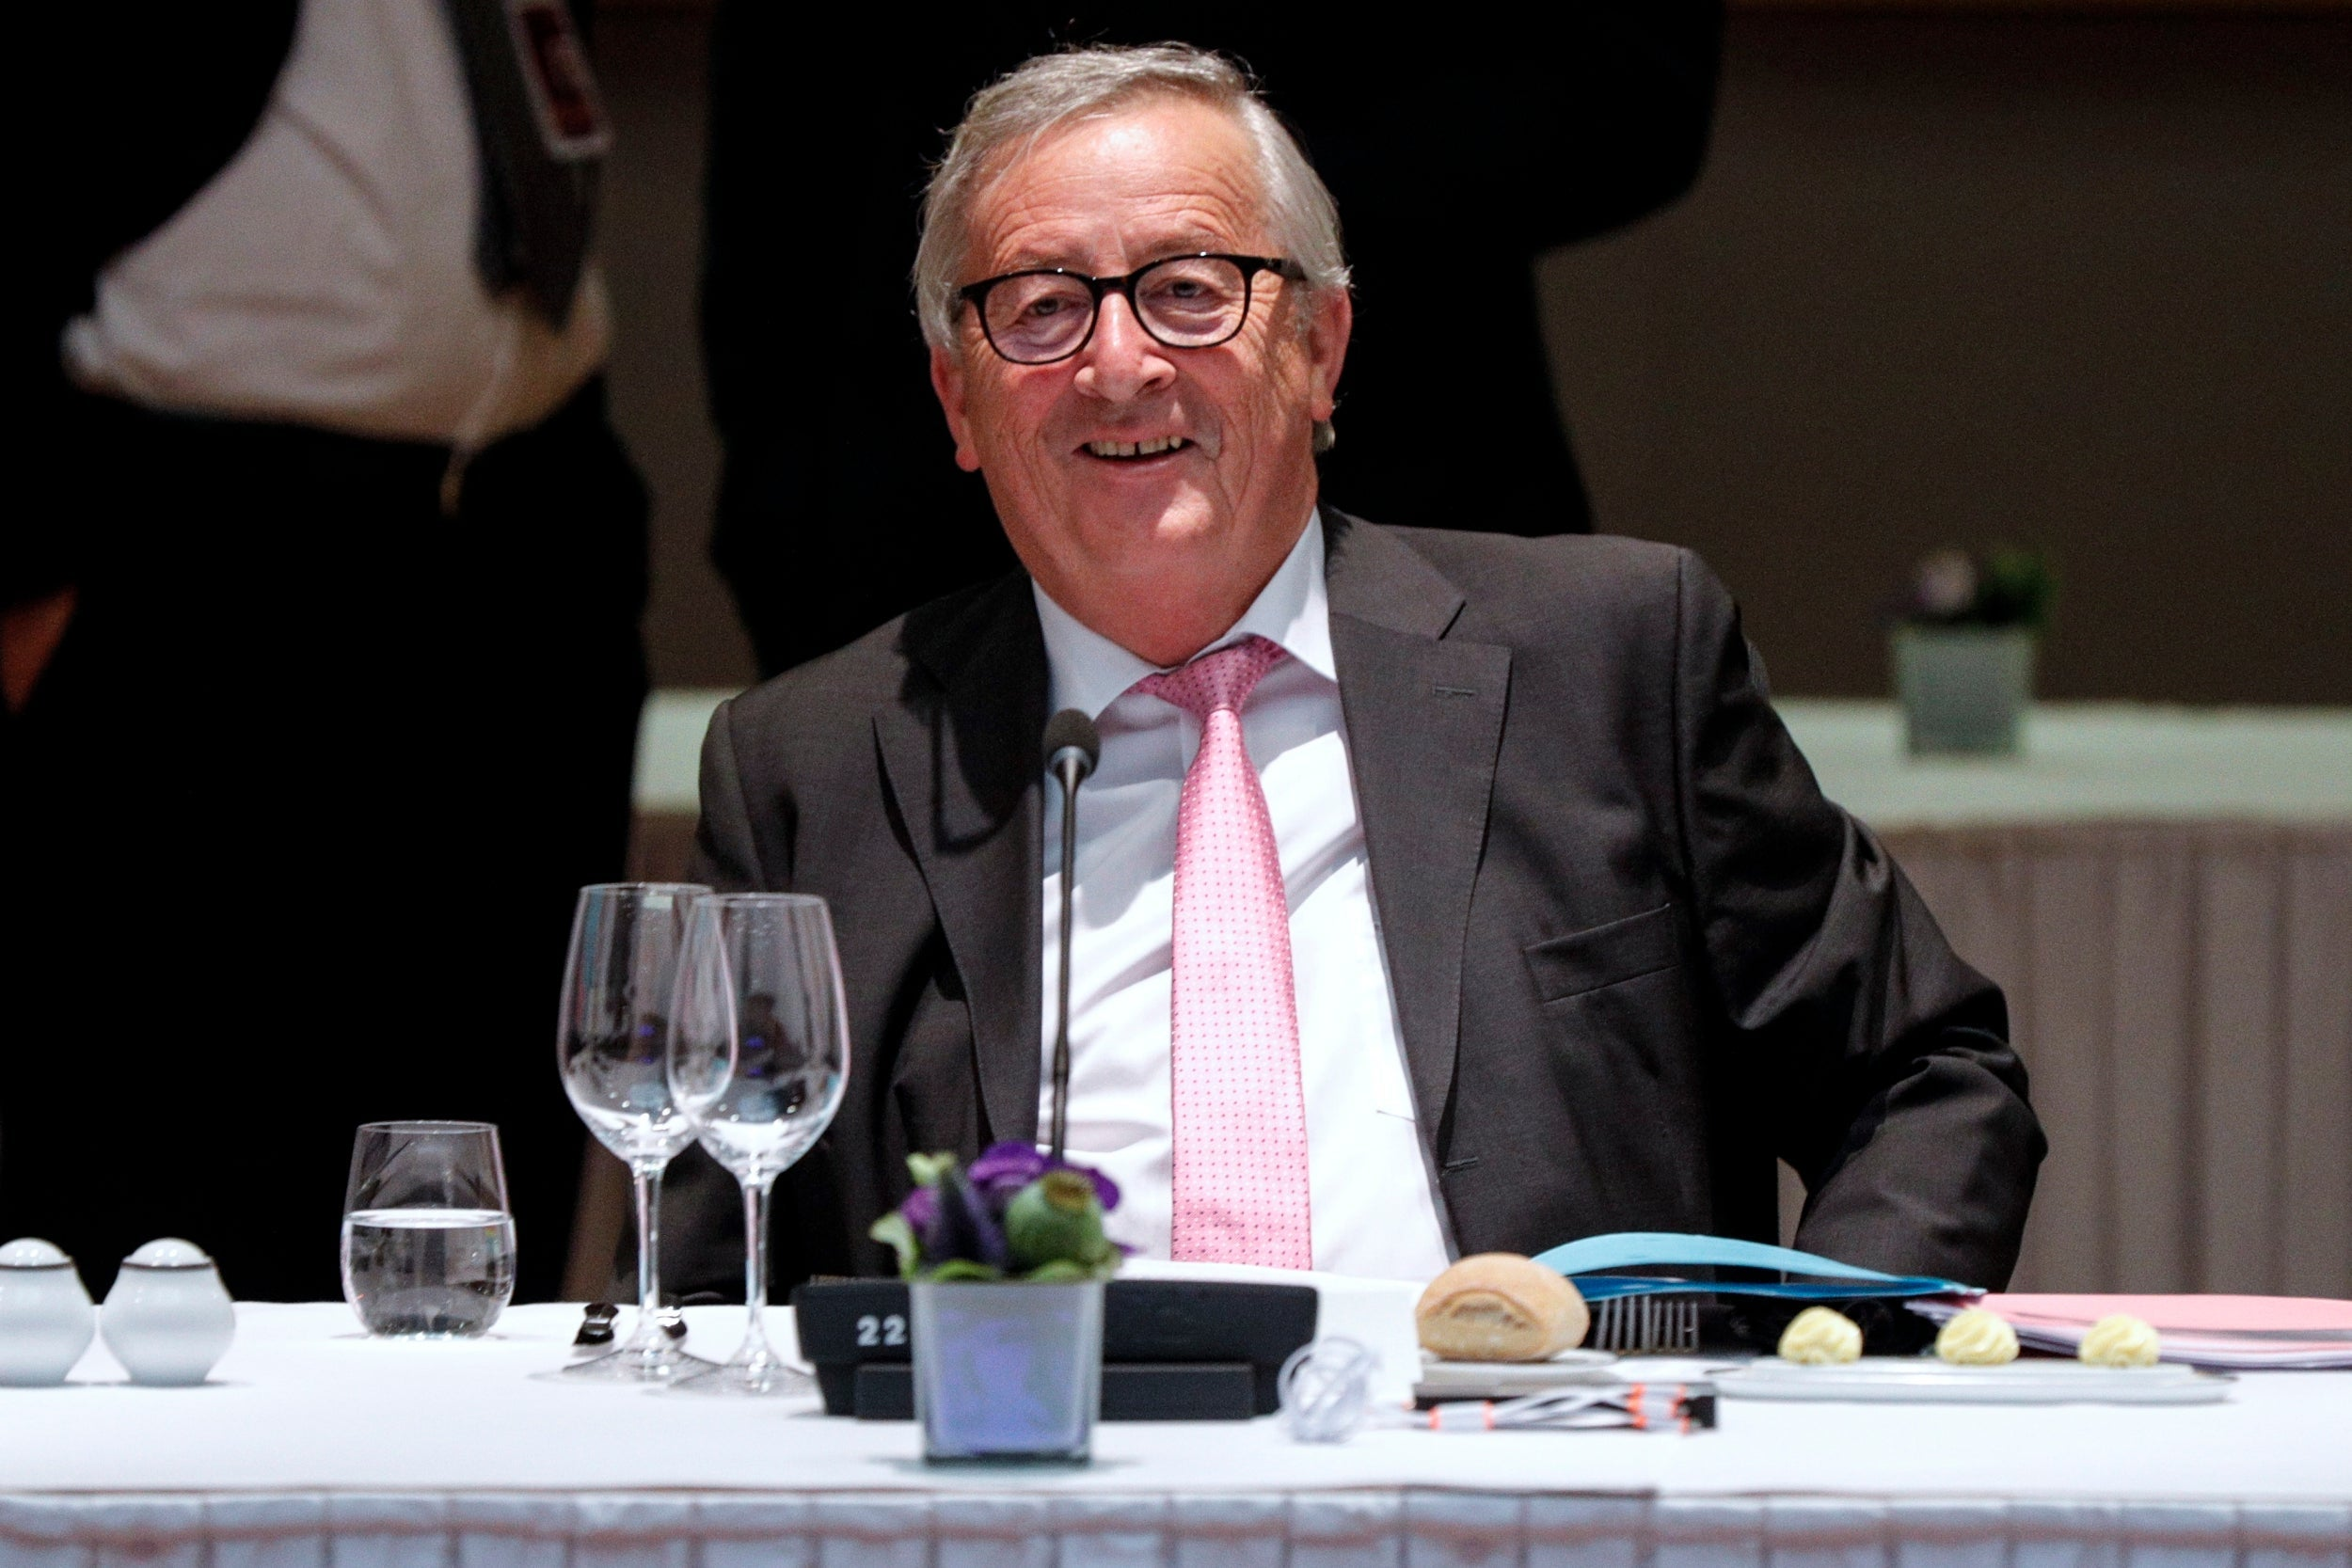 EU summit: Talks stall as leaders argue into early hours over Jean-Claude Juncker's replacement 6